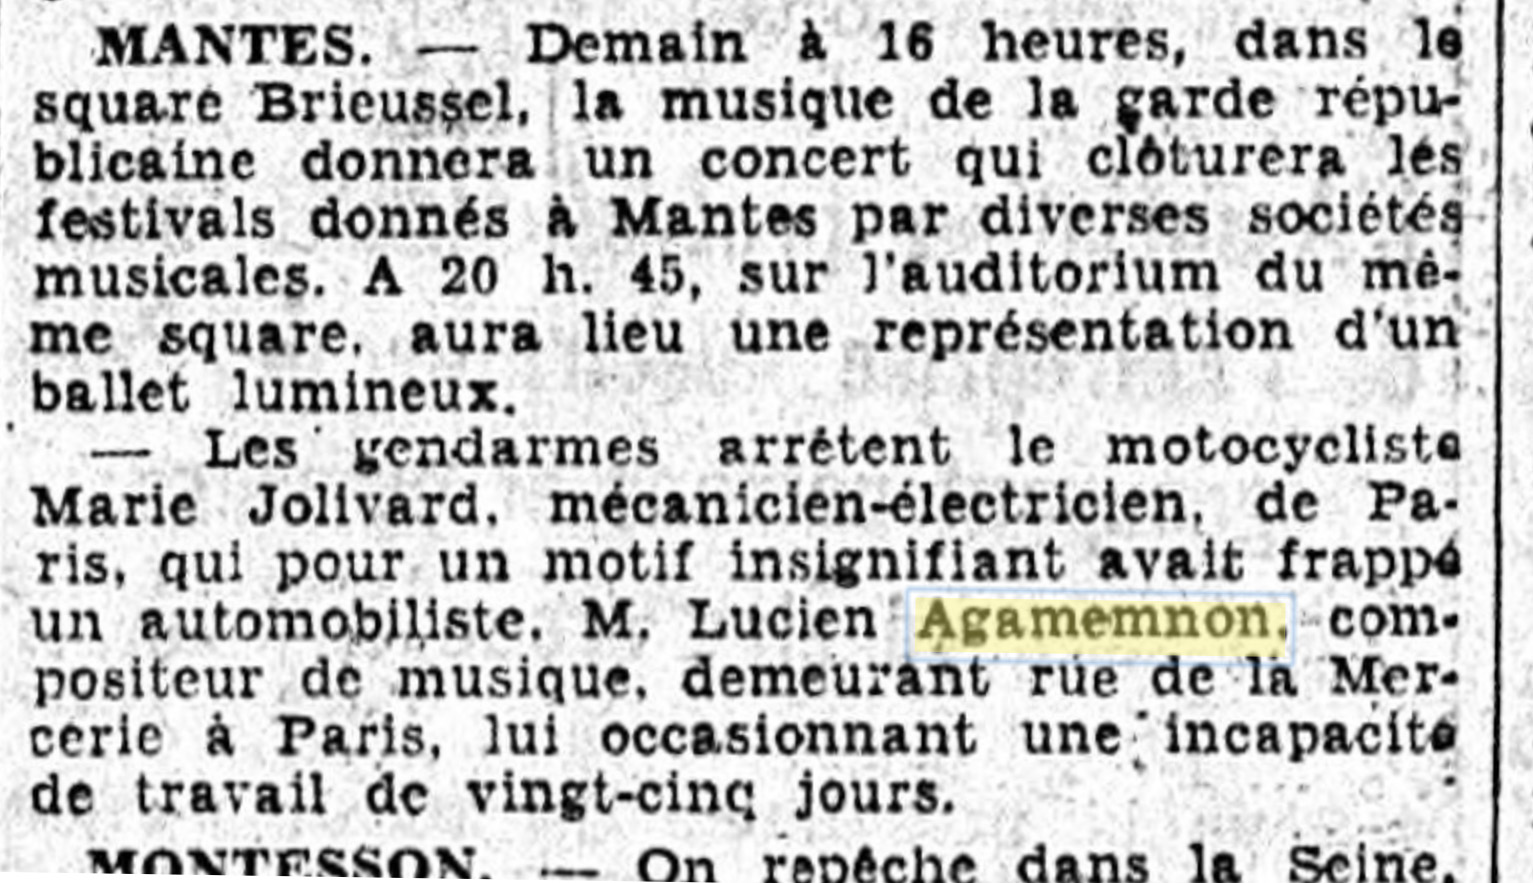 Lucien Agamemnon being victim of road rage (Le Matin, 18-09-1937).